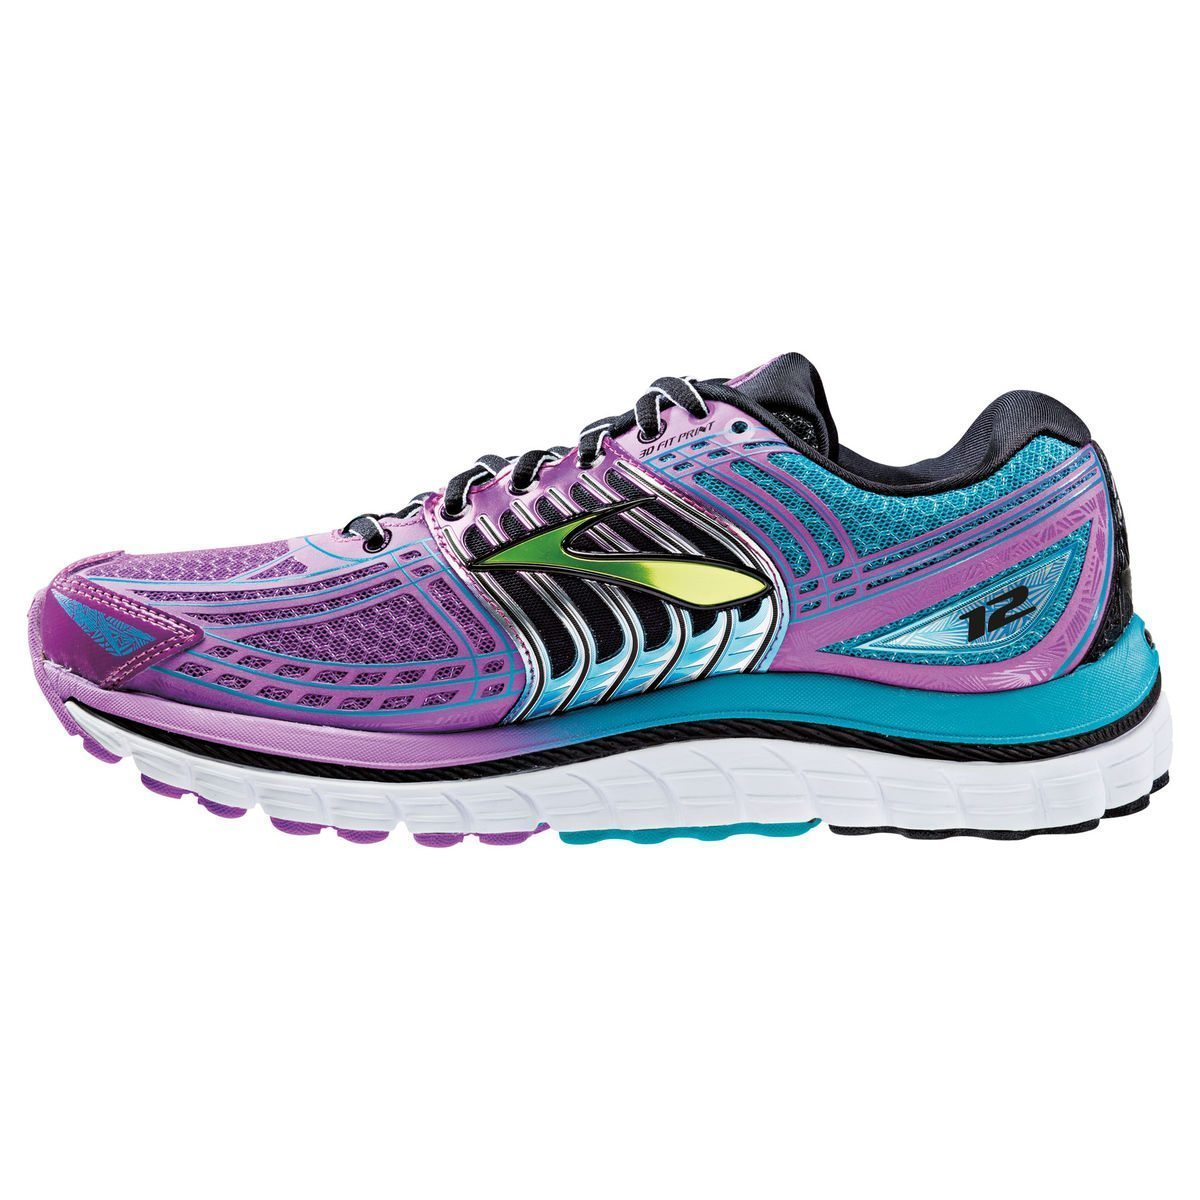 Brooks running GLYCERIN 12 sneaker review